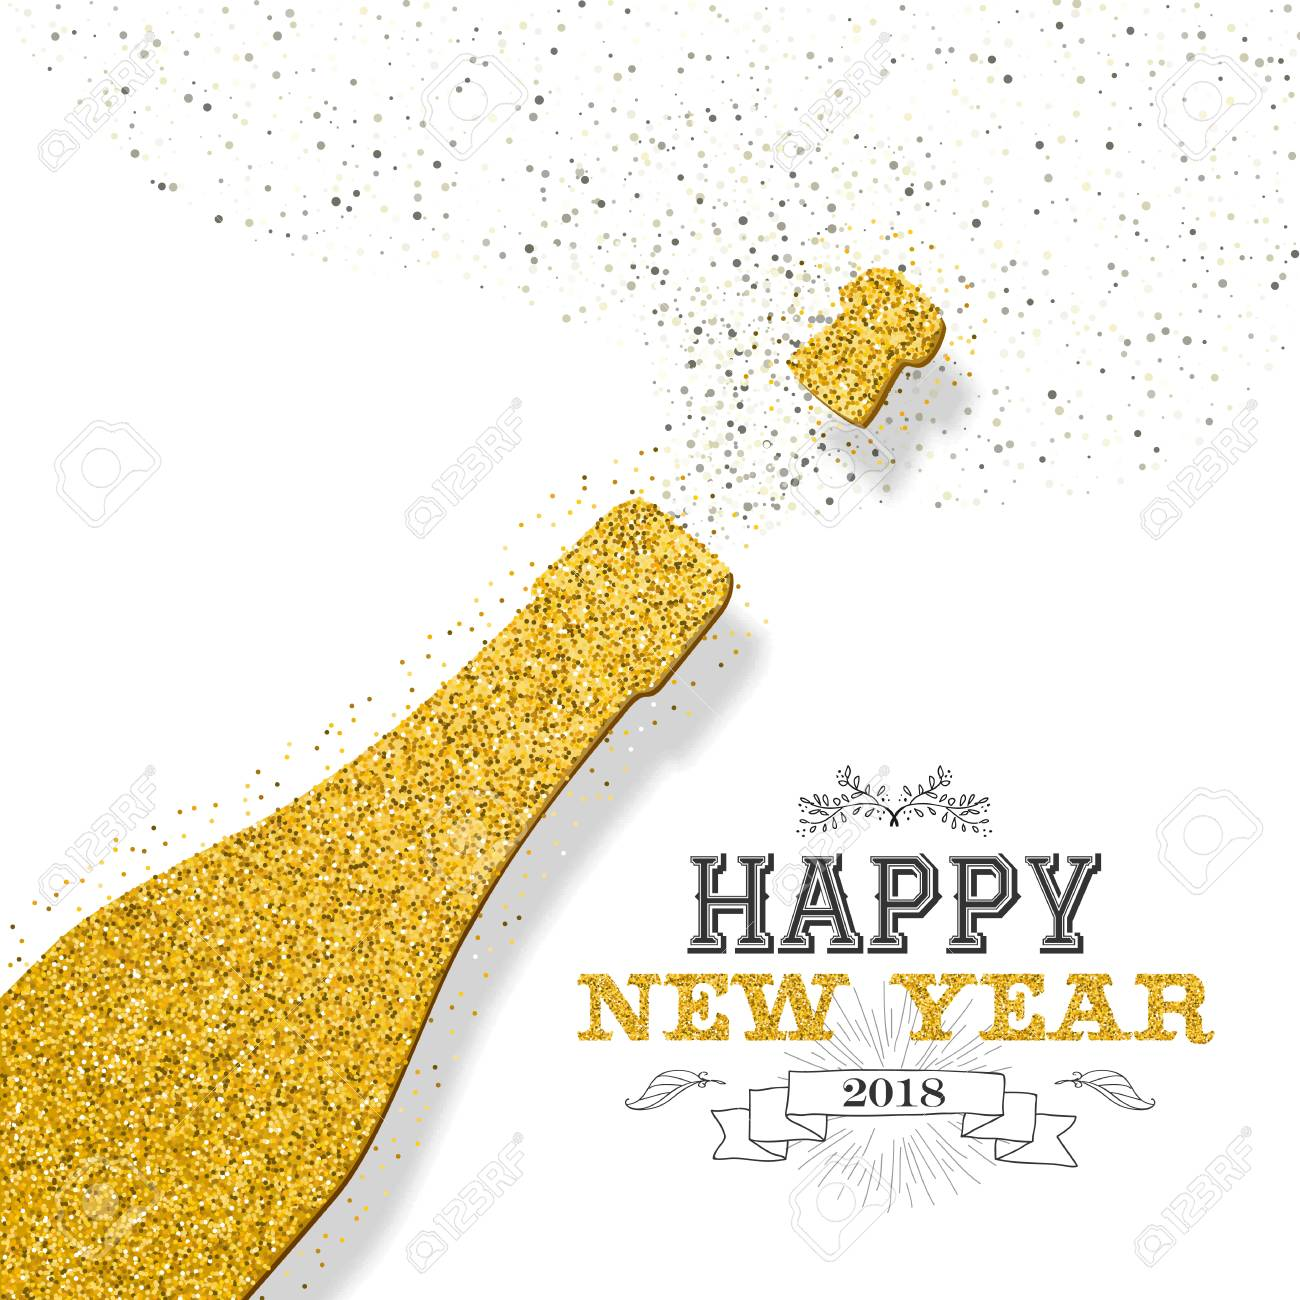 happy new year 2018 luxury gold champagne bottle made of golden glitter dust ideal for